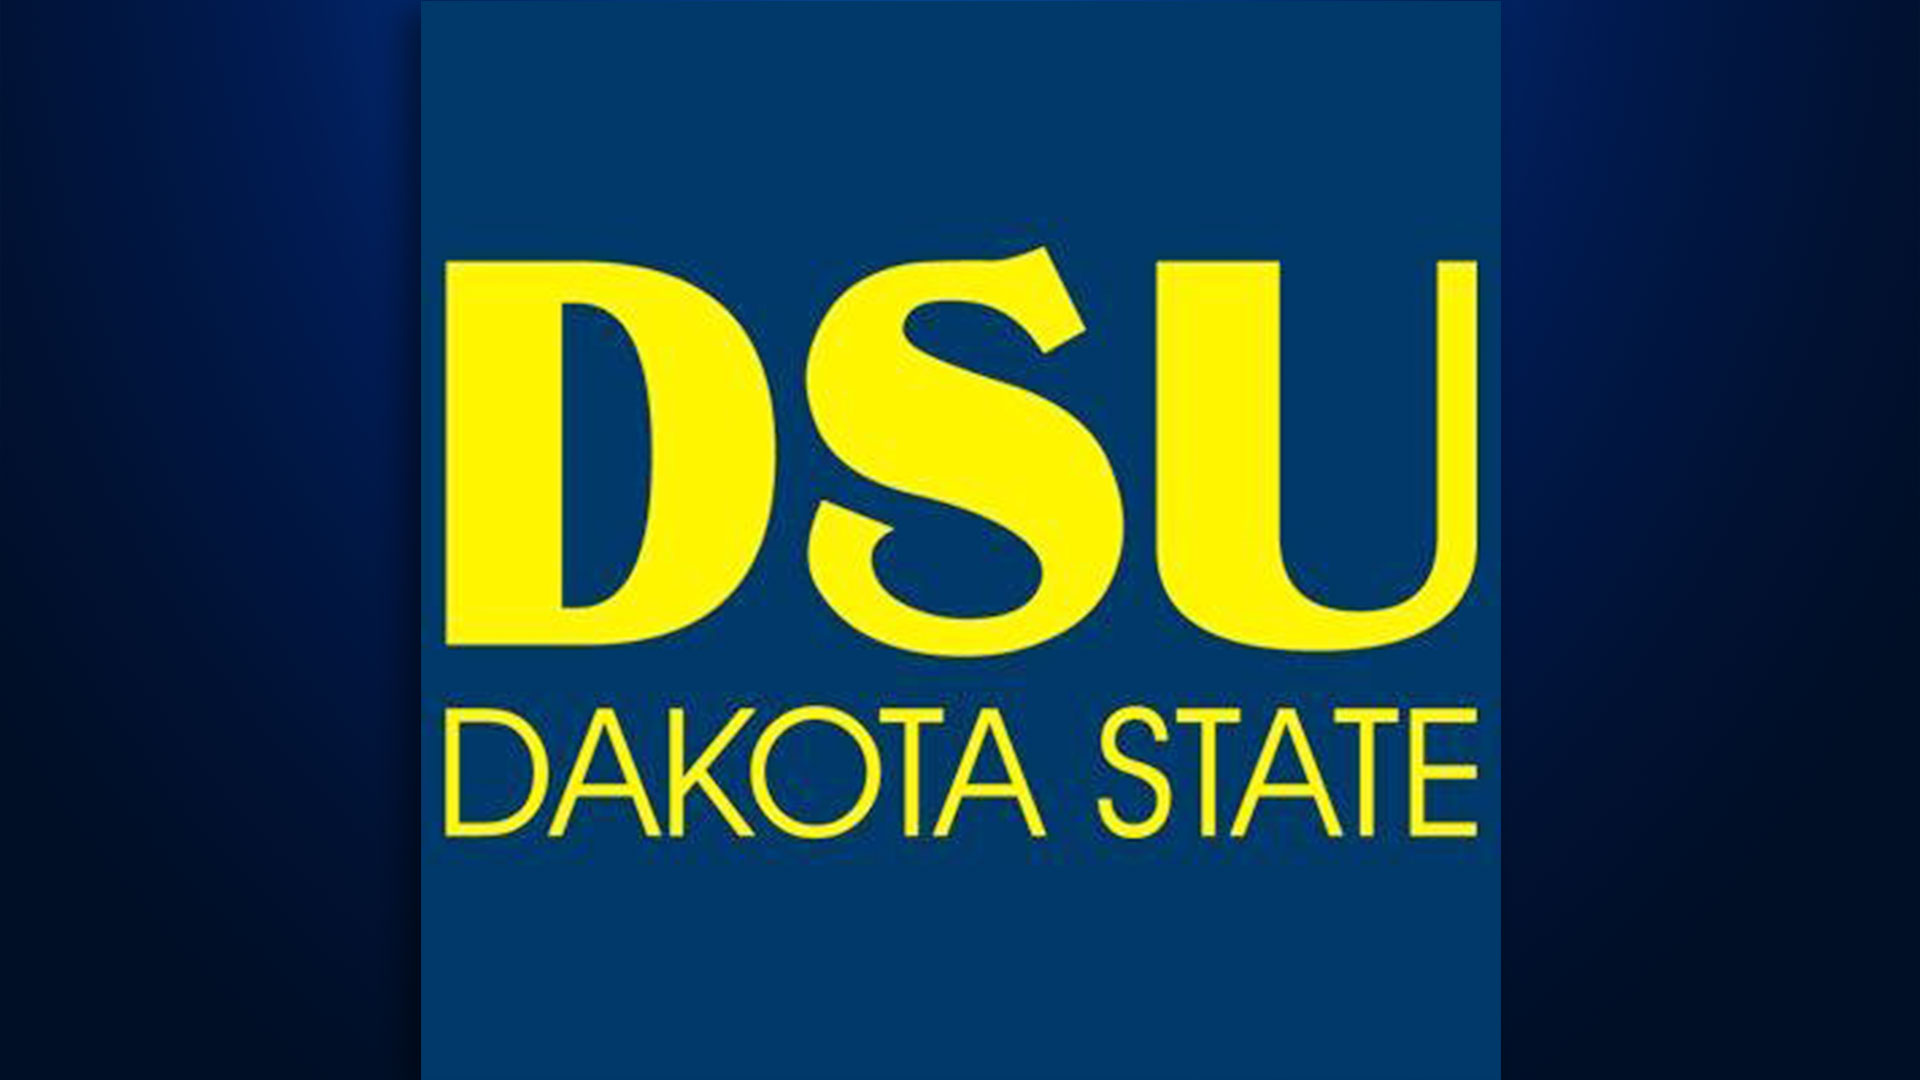 KELO Dakota State University Logo